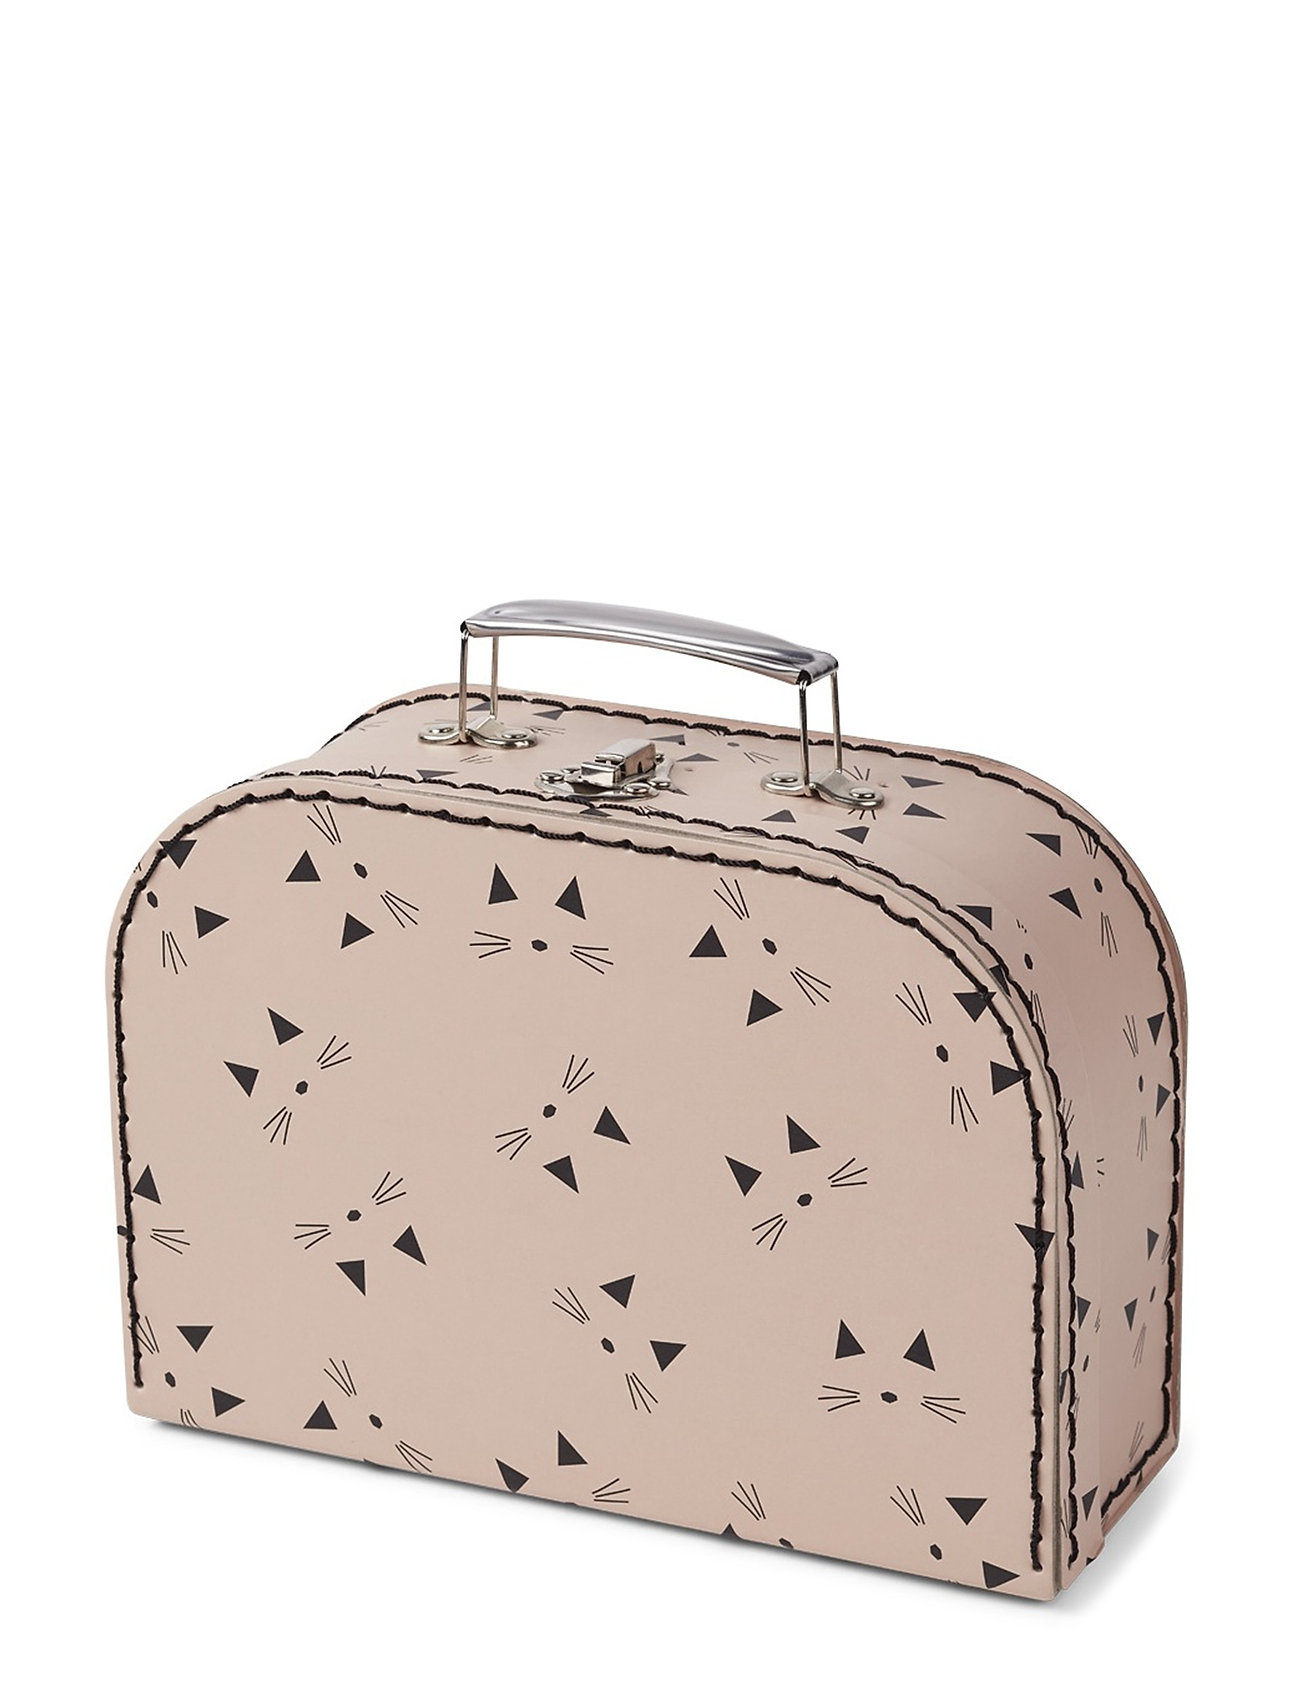 Liewood Poppin suitcase - set of 3 - CAT ROSE